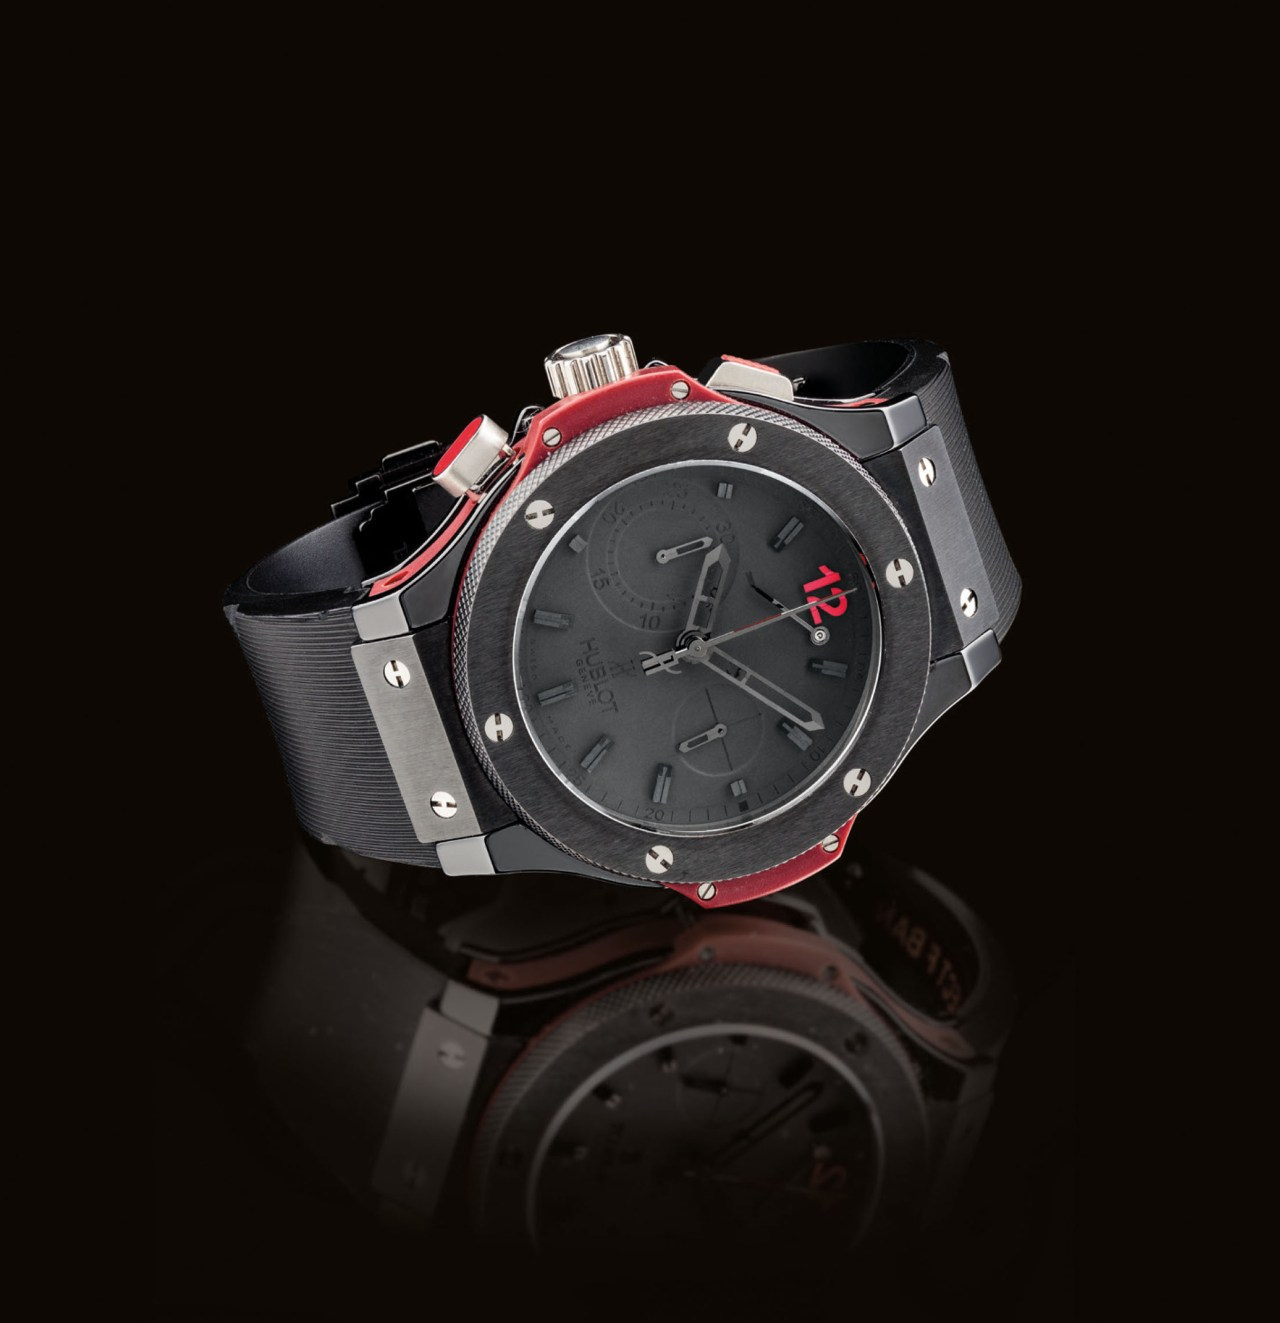 2018_HGK_16128_2232_000(hublot_an_unusual_black_ceramic_and_rubber_limited_edition_automatic_l)